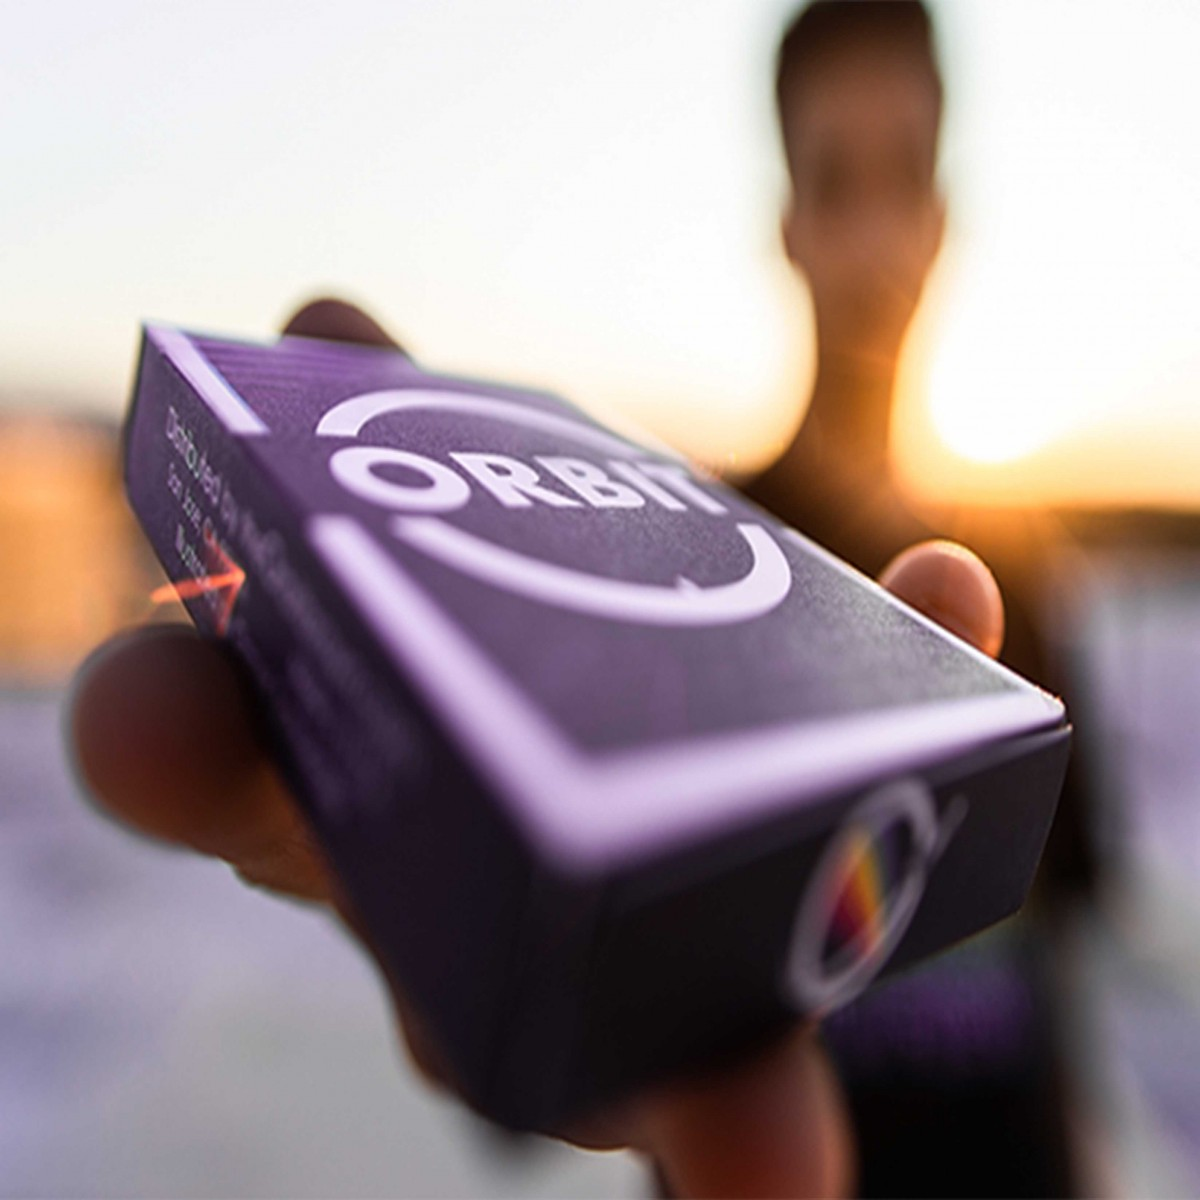 Orbit V7 playing cards